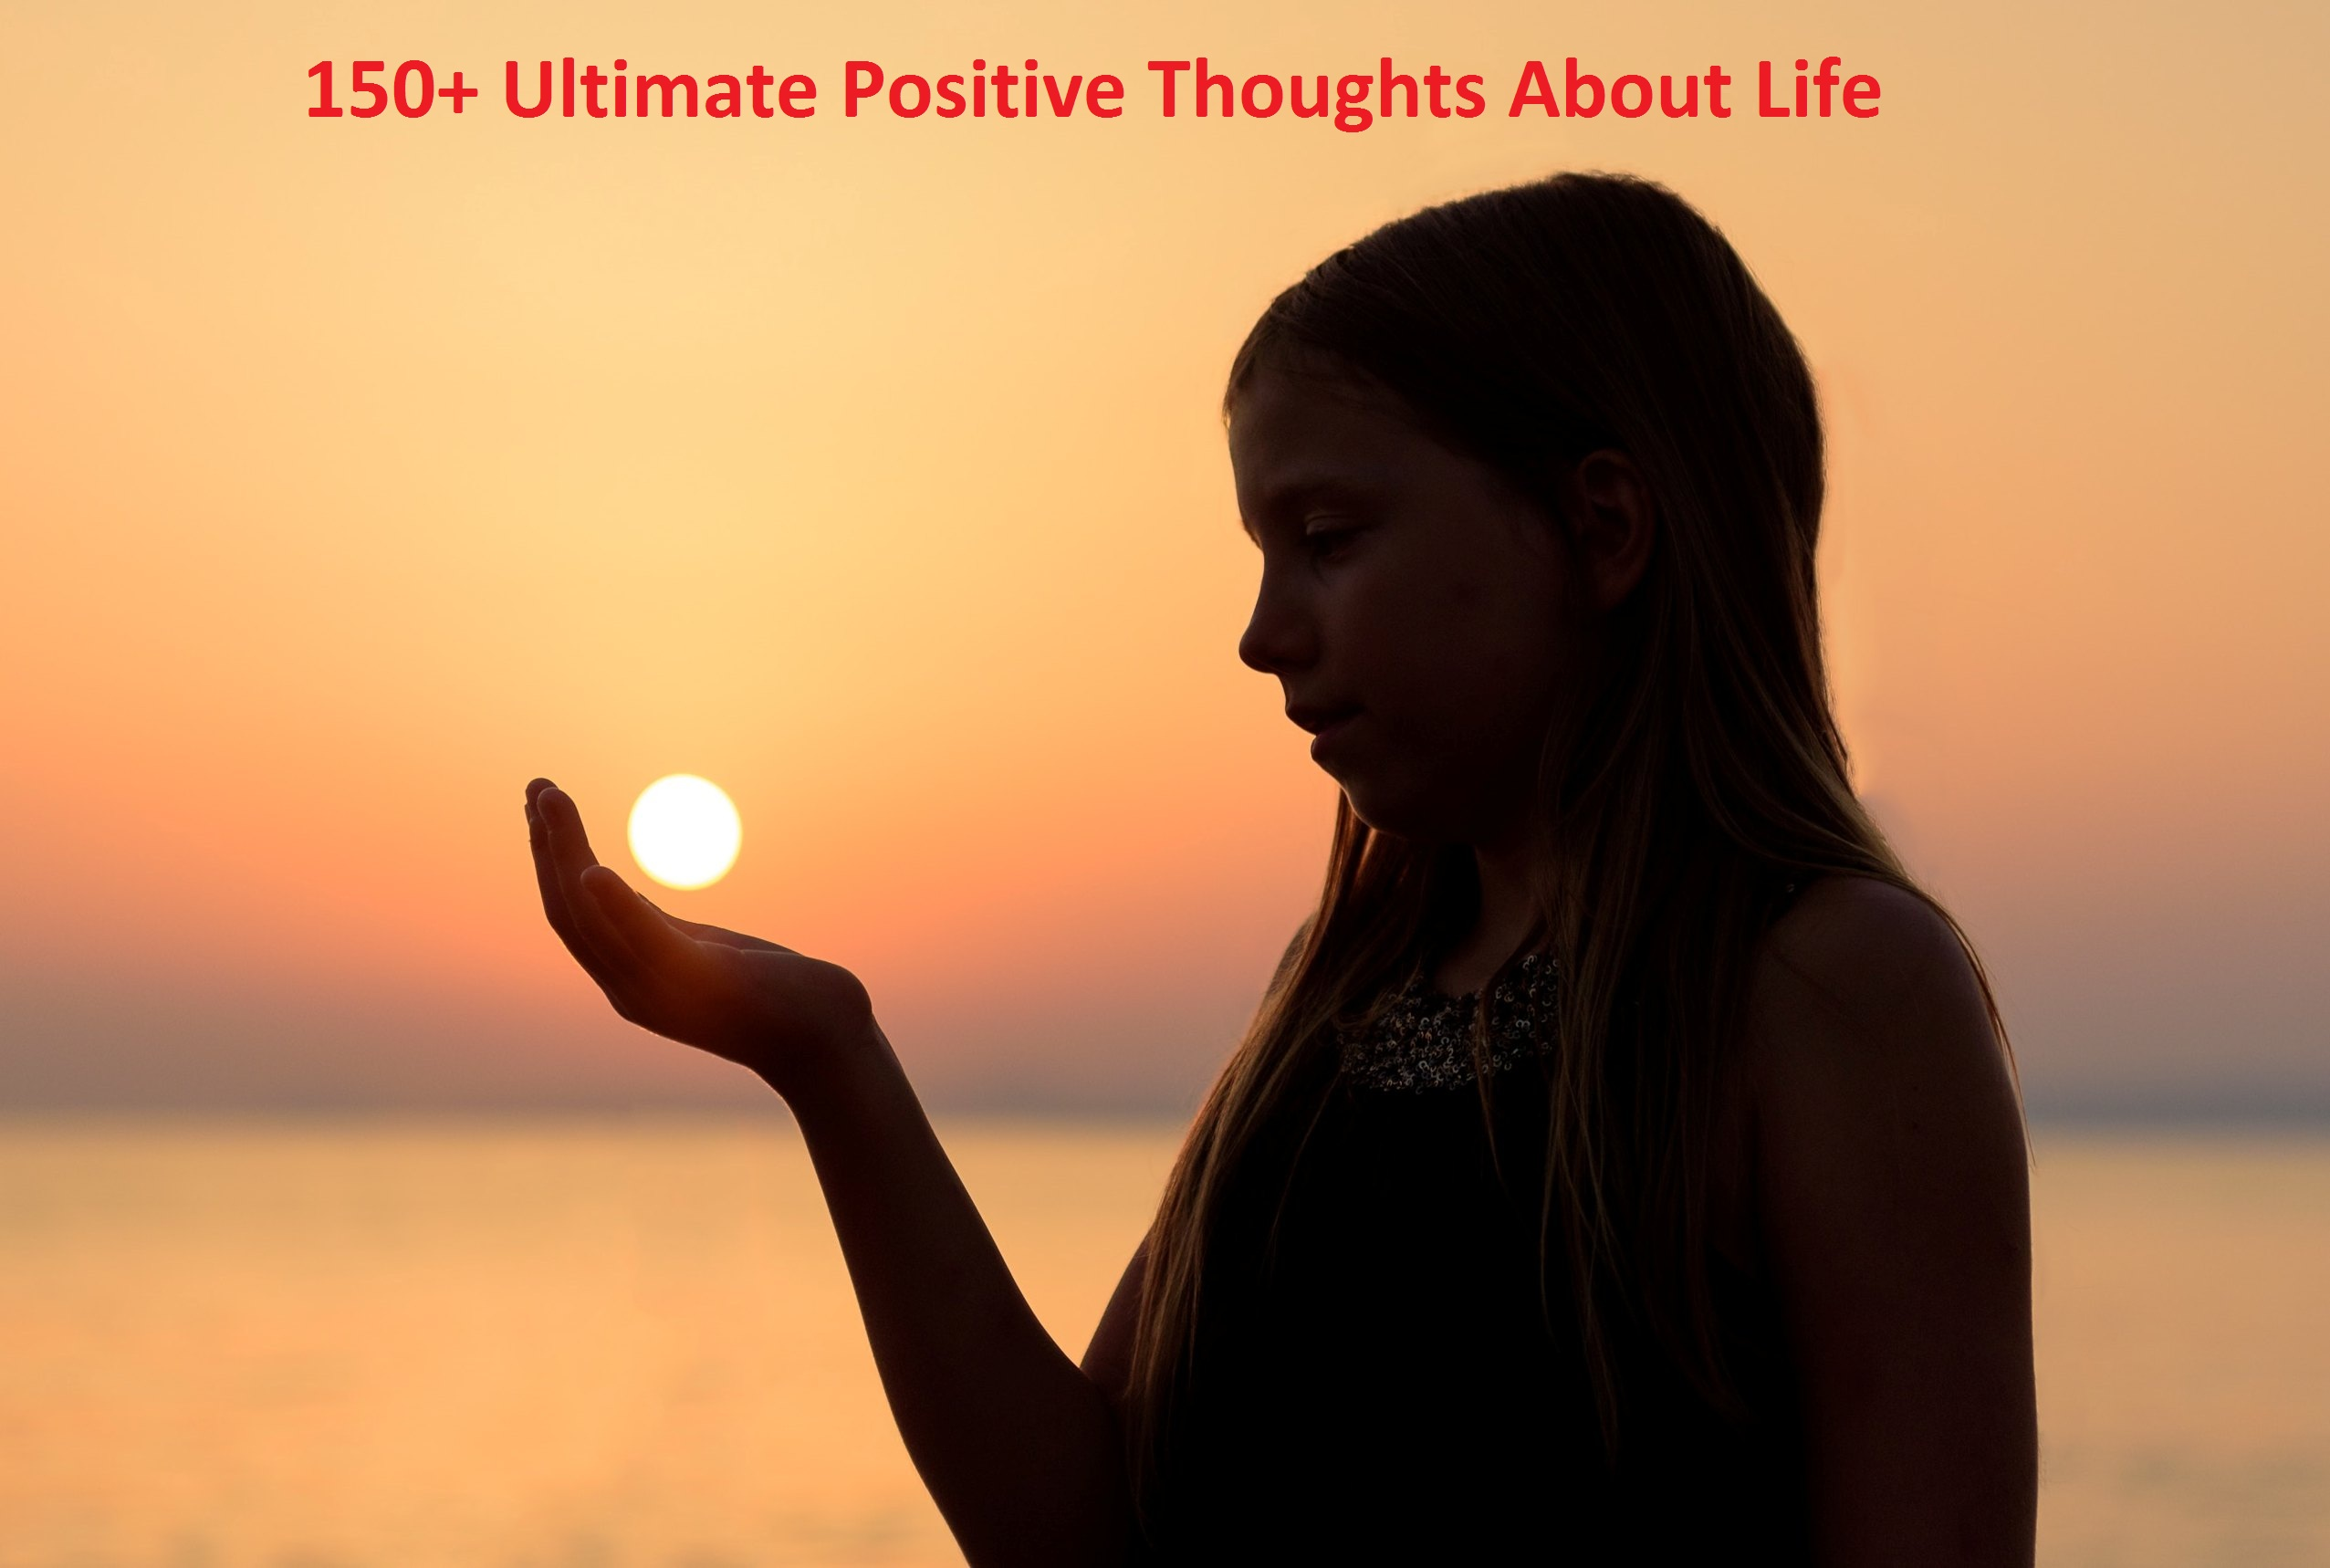 Ultimate positive thoughts about life